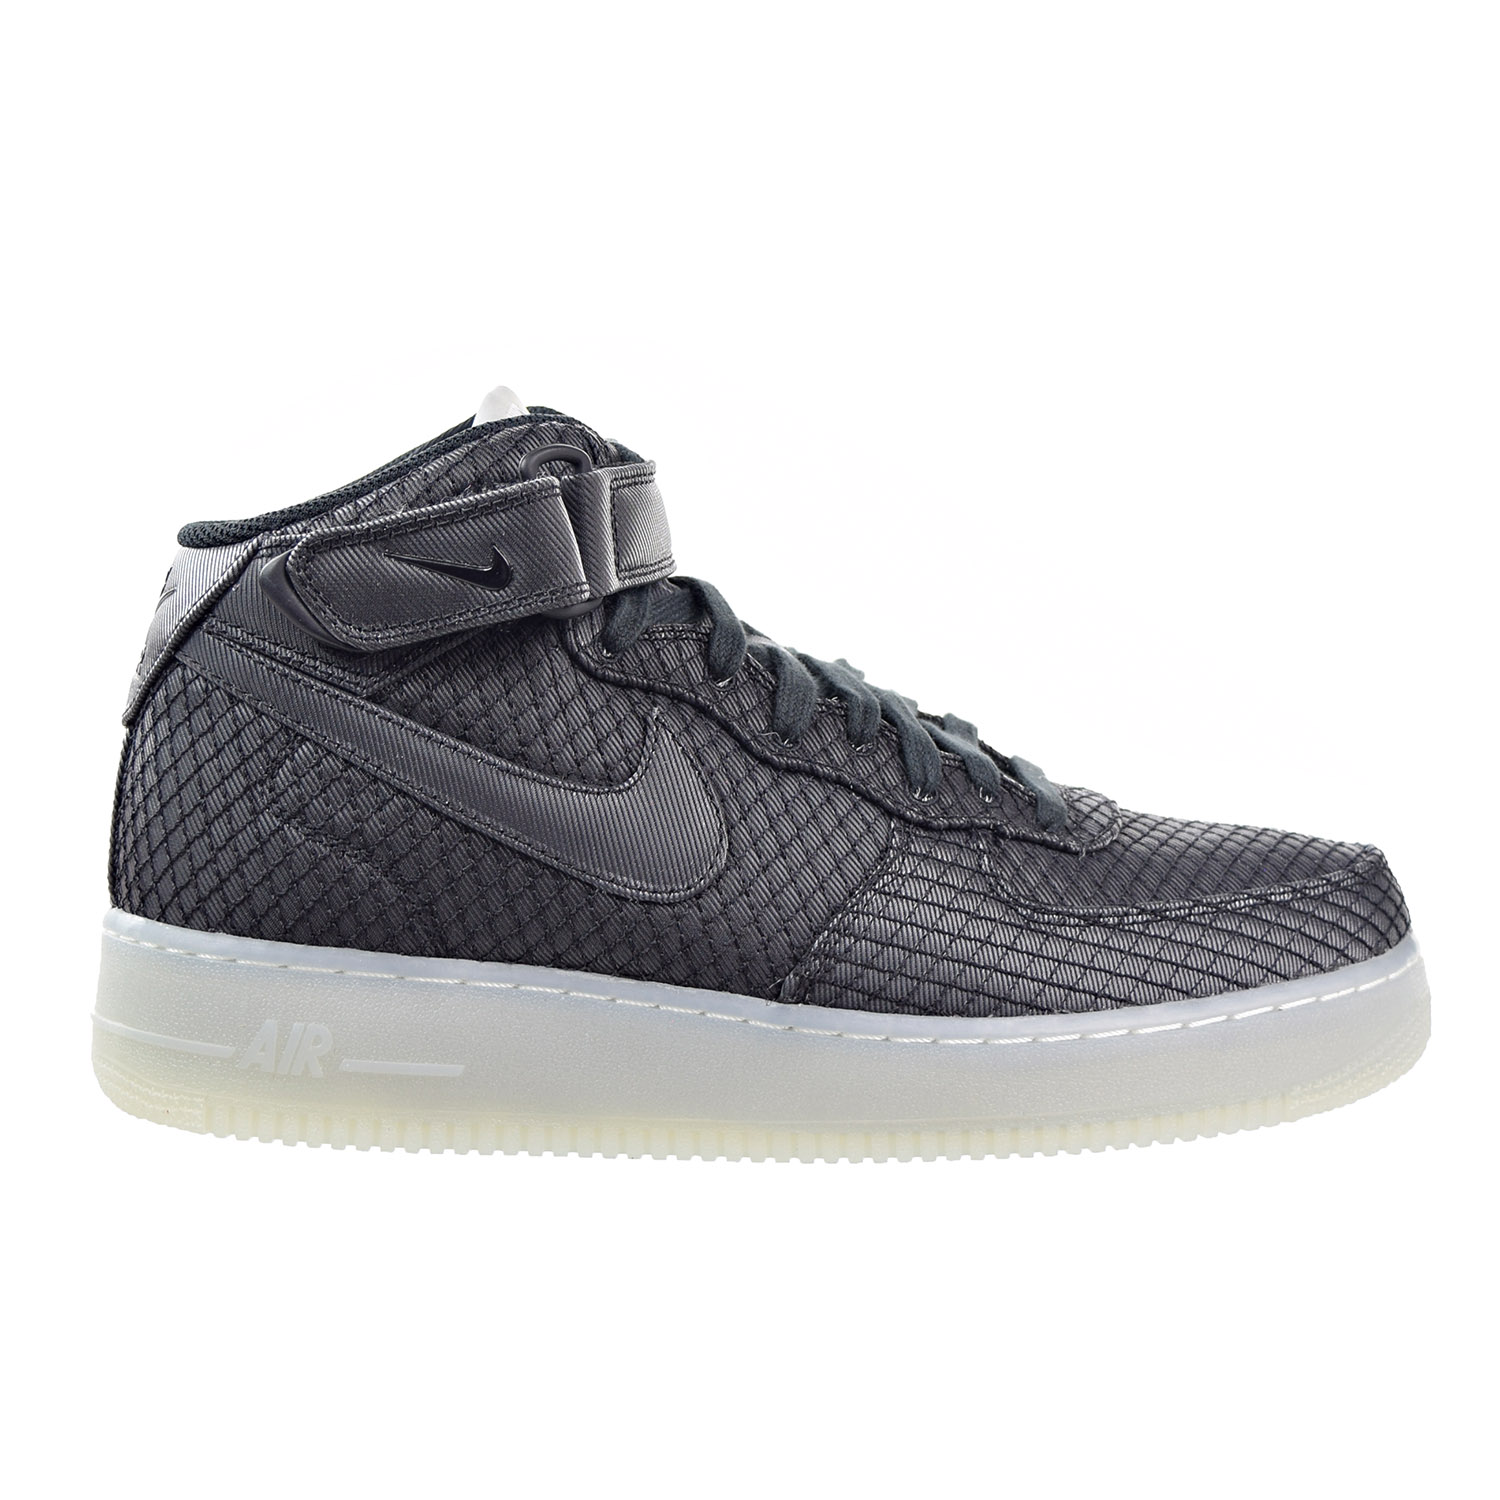 Nike Air Force 1 07 Mid LV8 Men's Shoe Black/White/Metall...